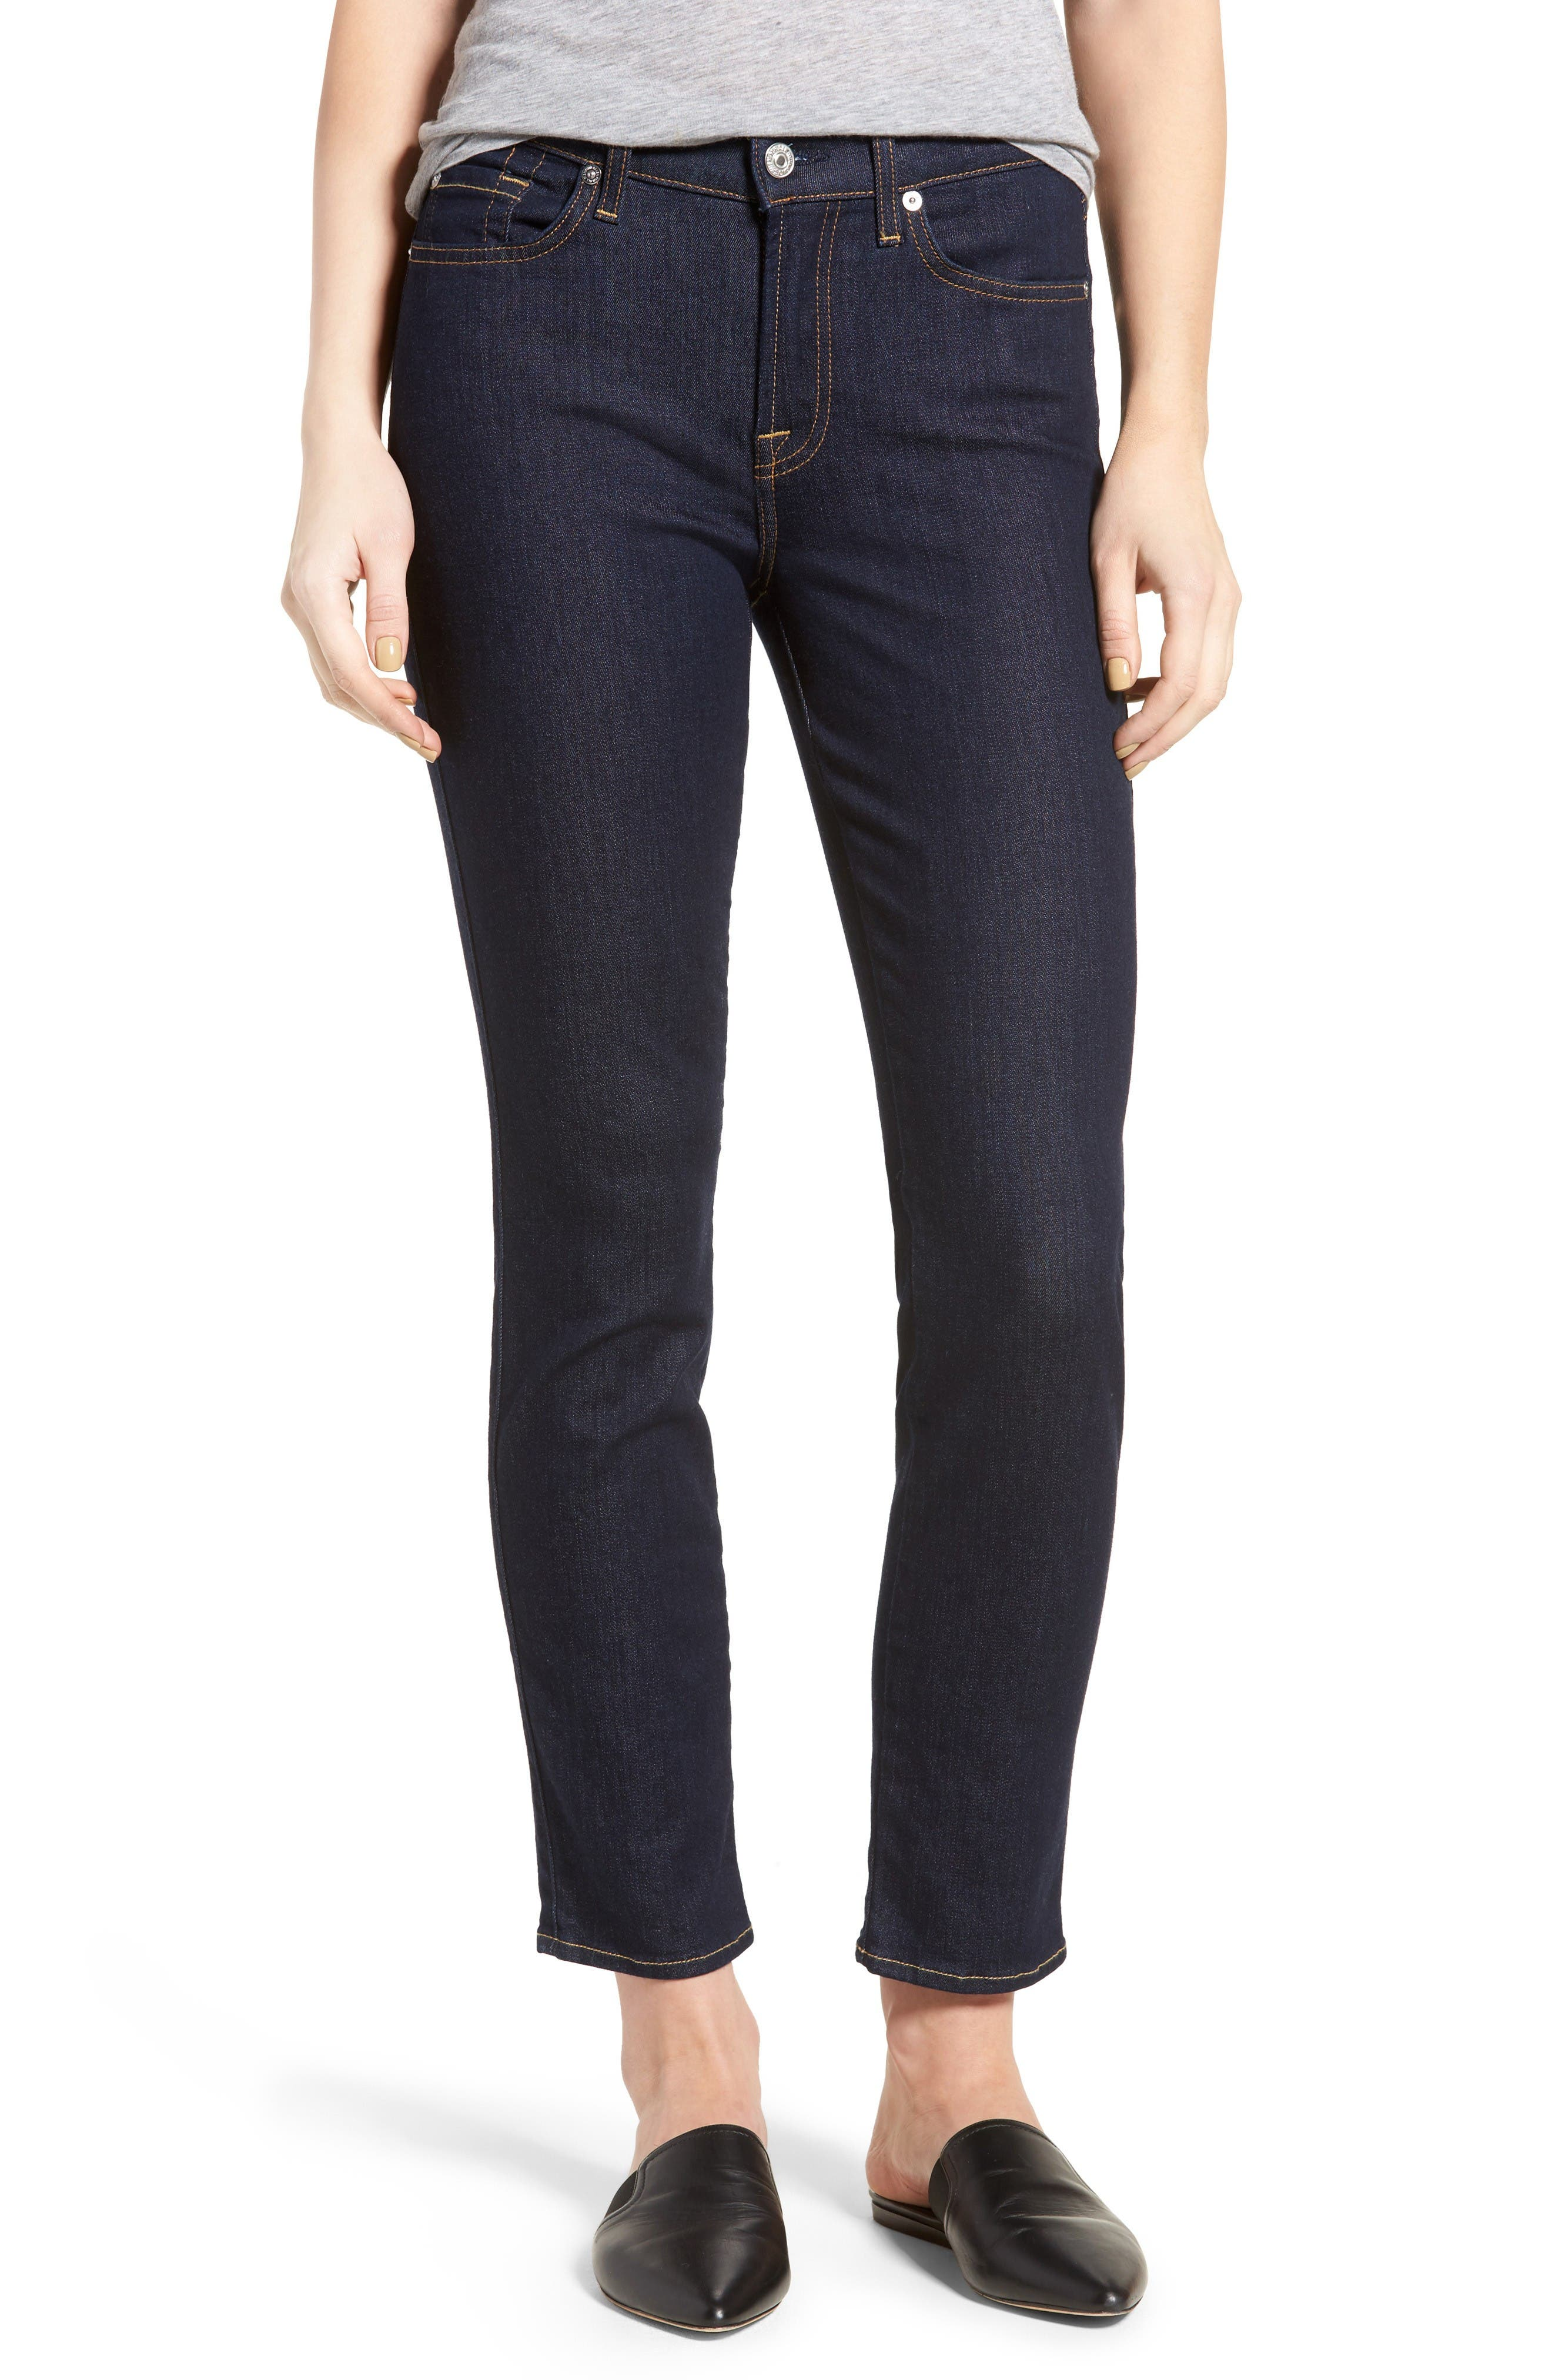 Main Image - 7 For All Mankind® b(air) Roxanne Ankle Skinny Jeans (Bair Authentic Rinse)